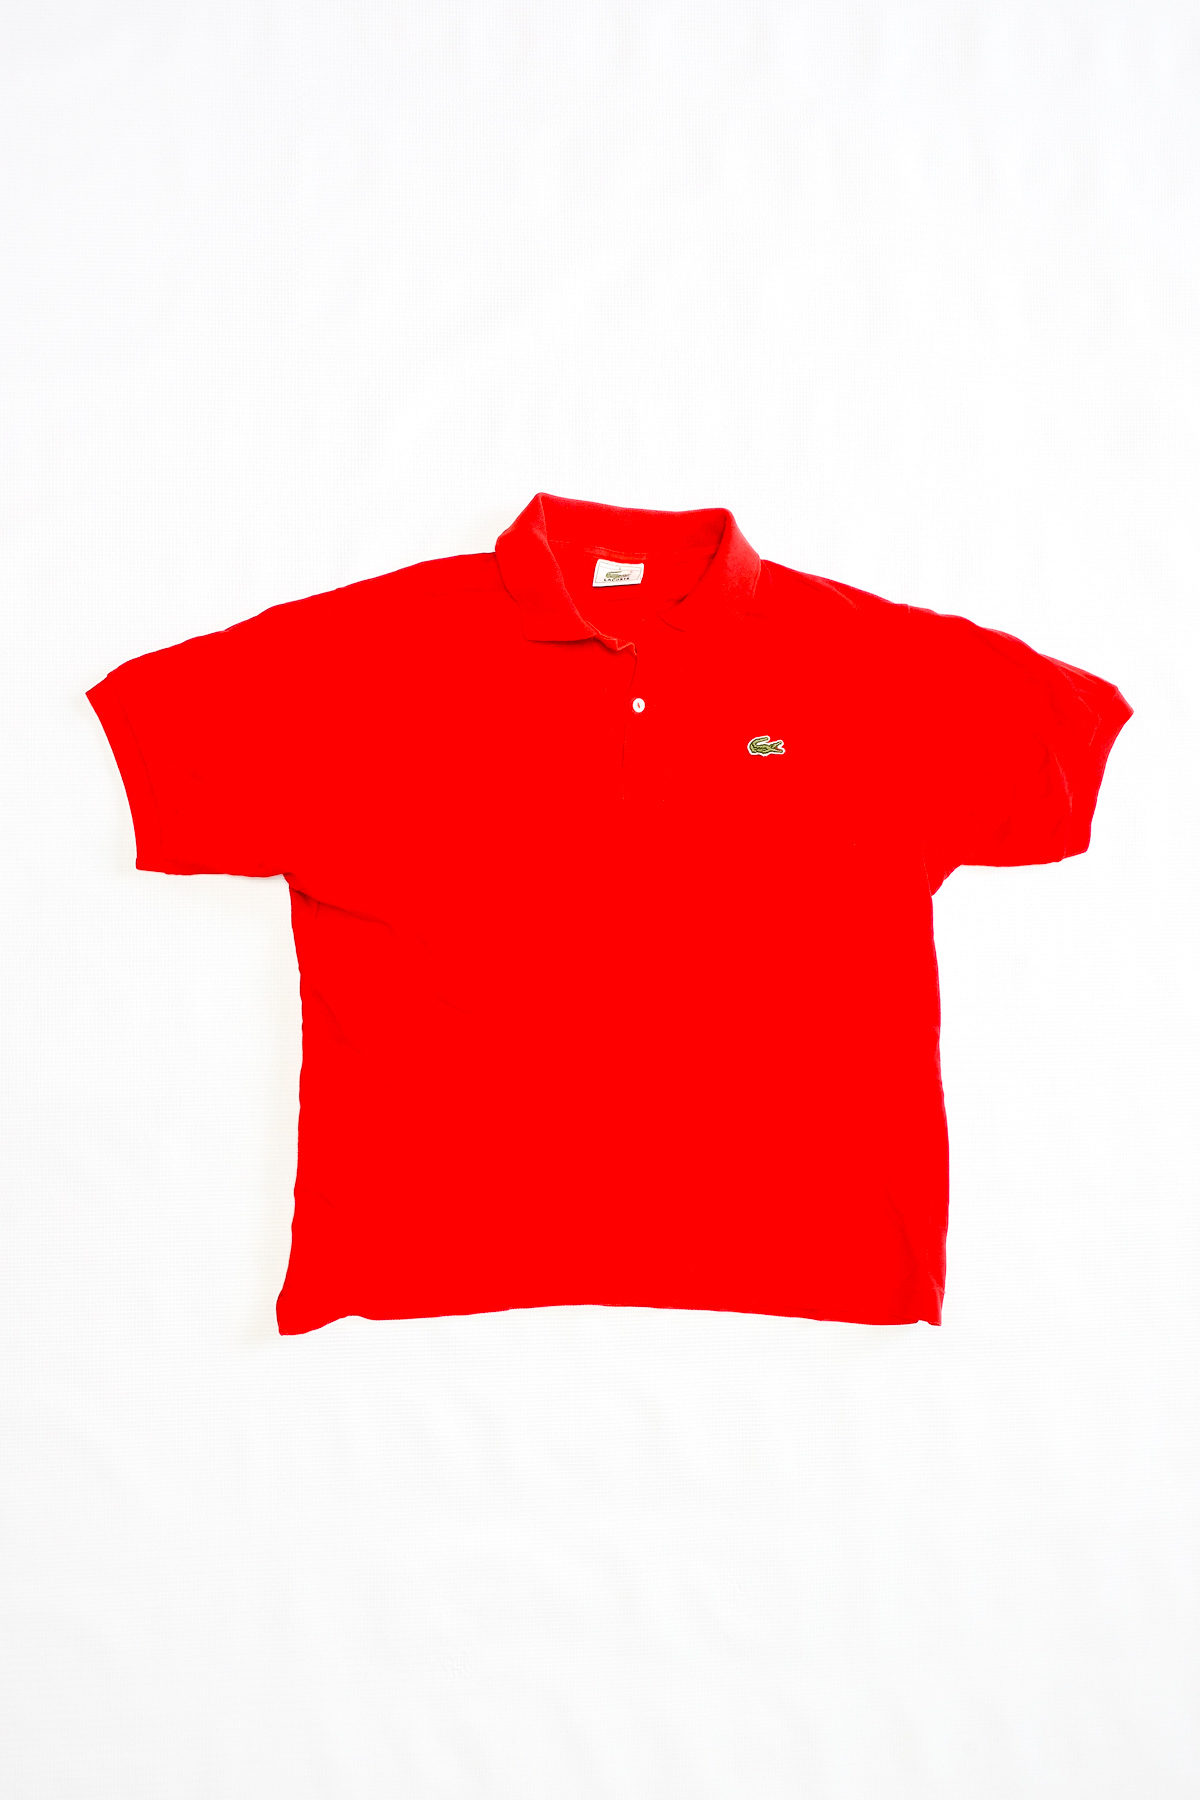 Lacoste POLO VINTAGE Red